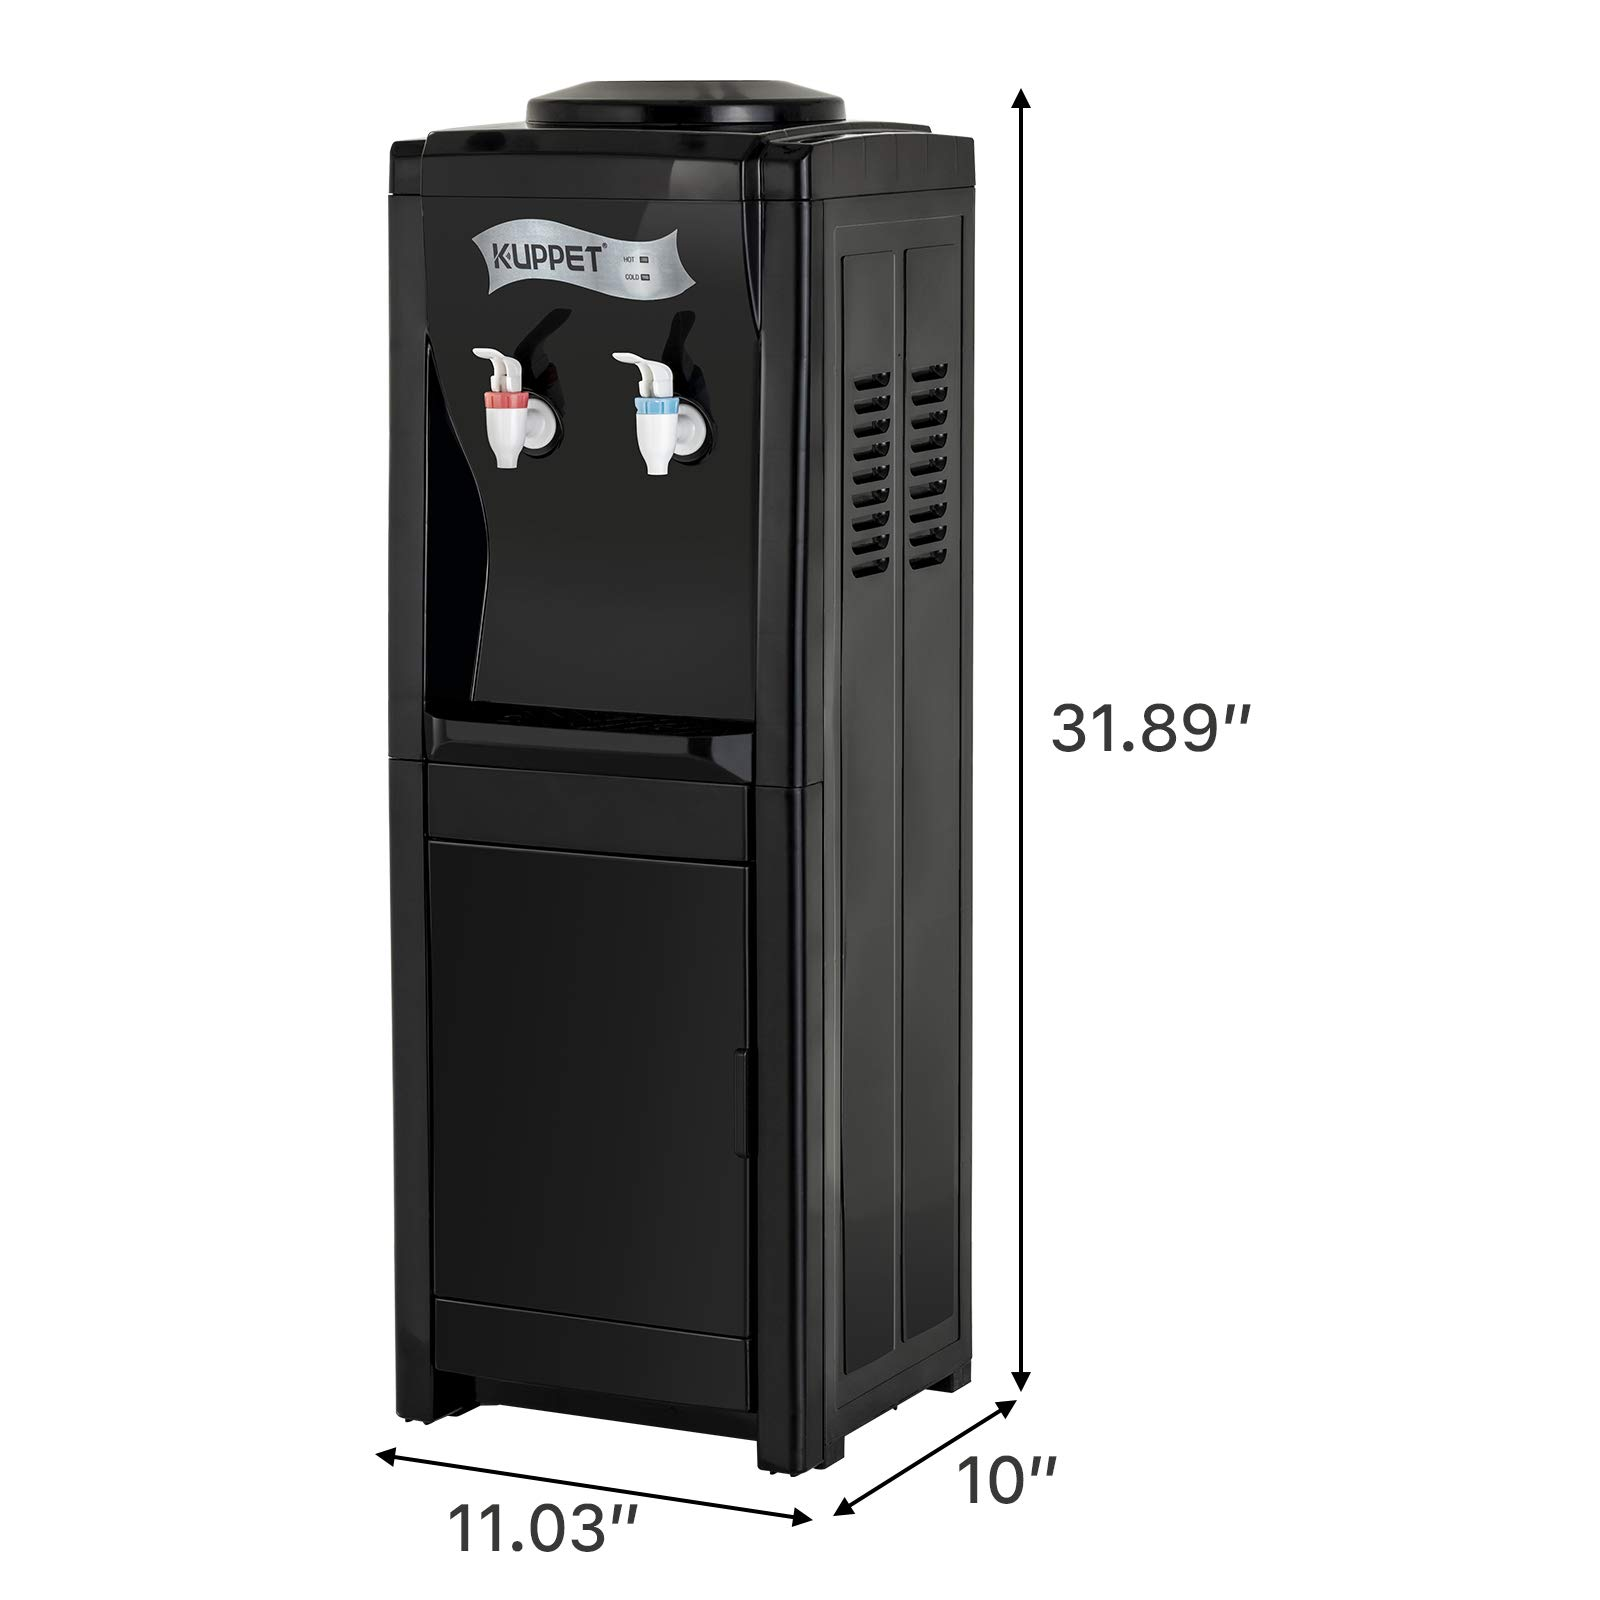 KUPPET Water Cooler Dispenser-Top Loading Freestanding Water Dispenser with Storage Cabinet, 5 Gallon, Two Temperature Settings-Hot(185℉-203℉), Normal Temperature(50℉-59℉), BLACK(32'', Black) by KUPPET (Image #9)